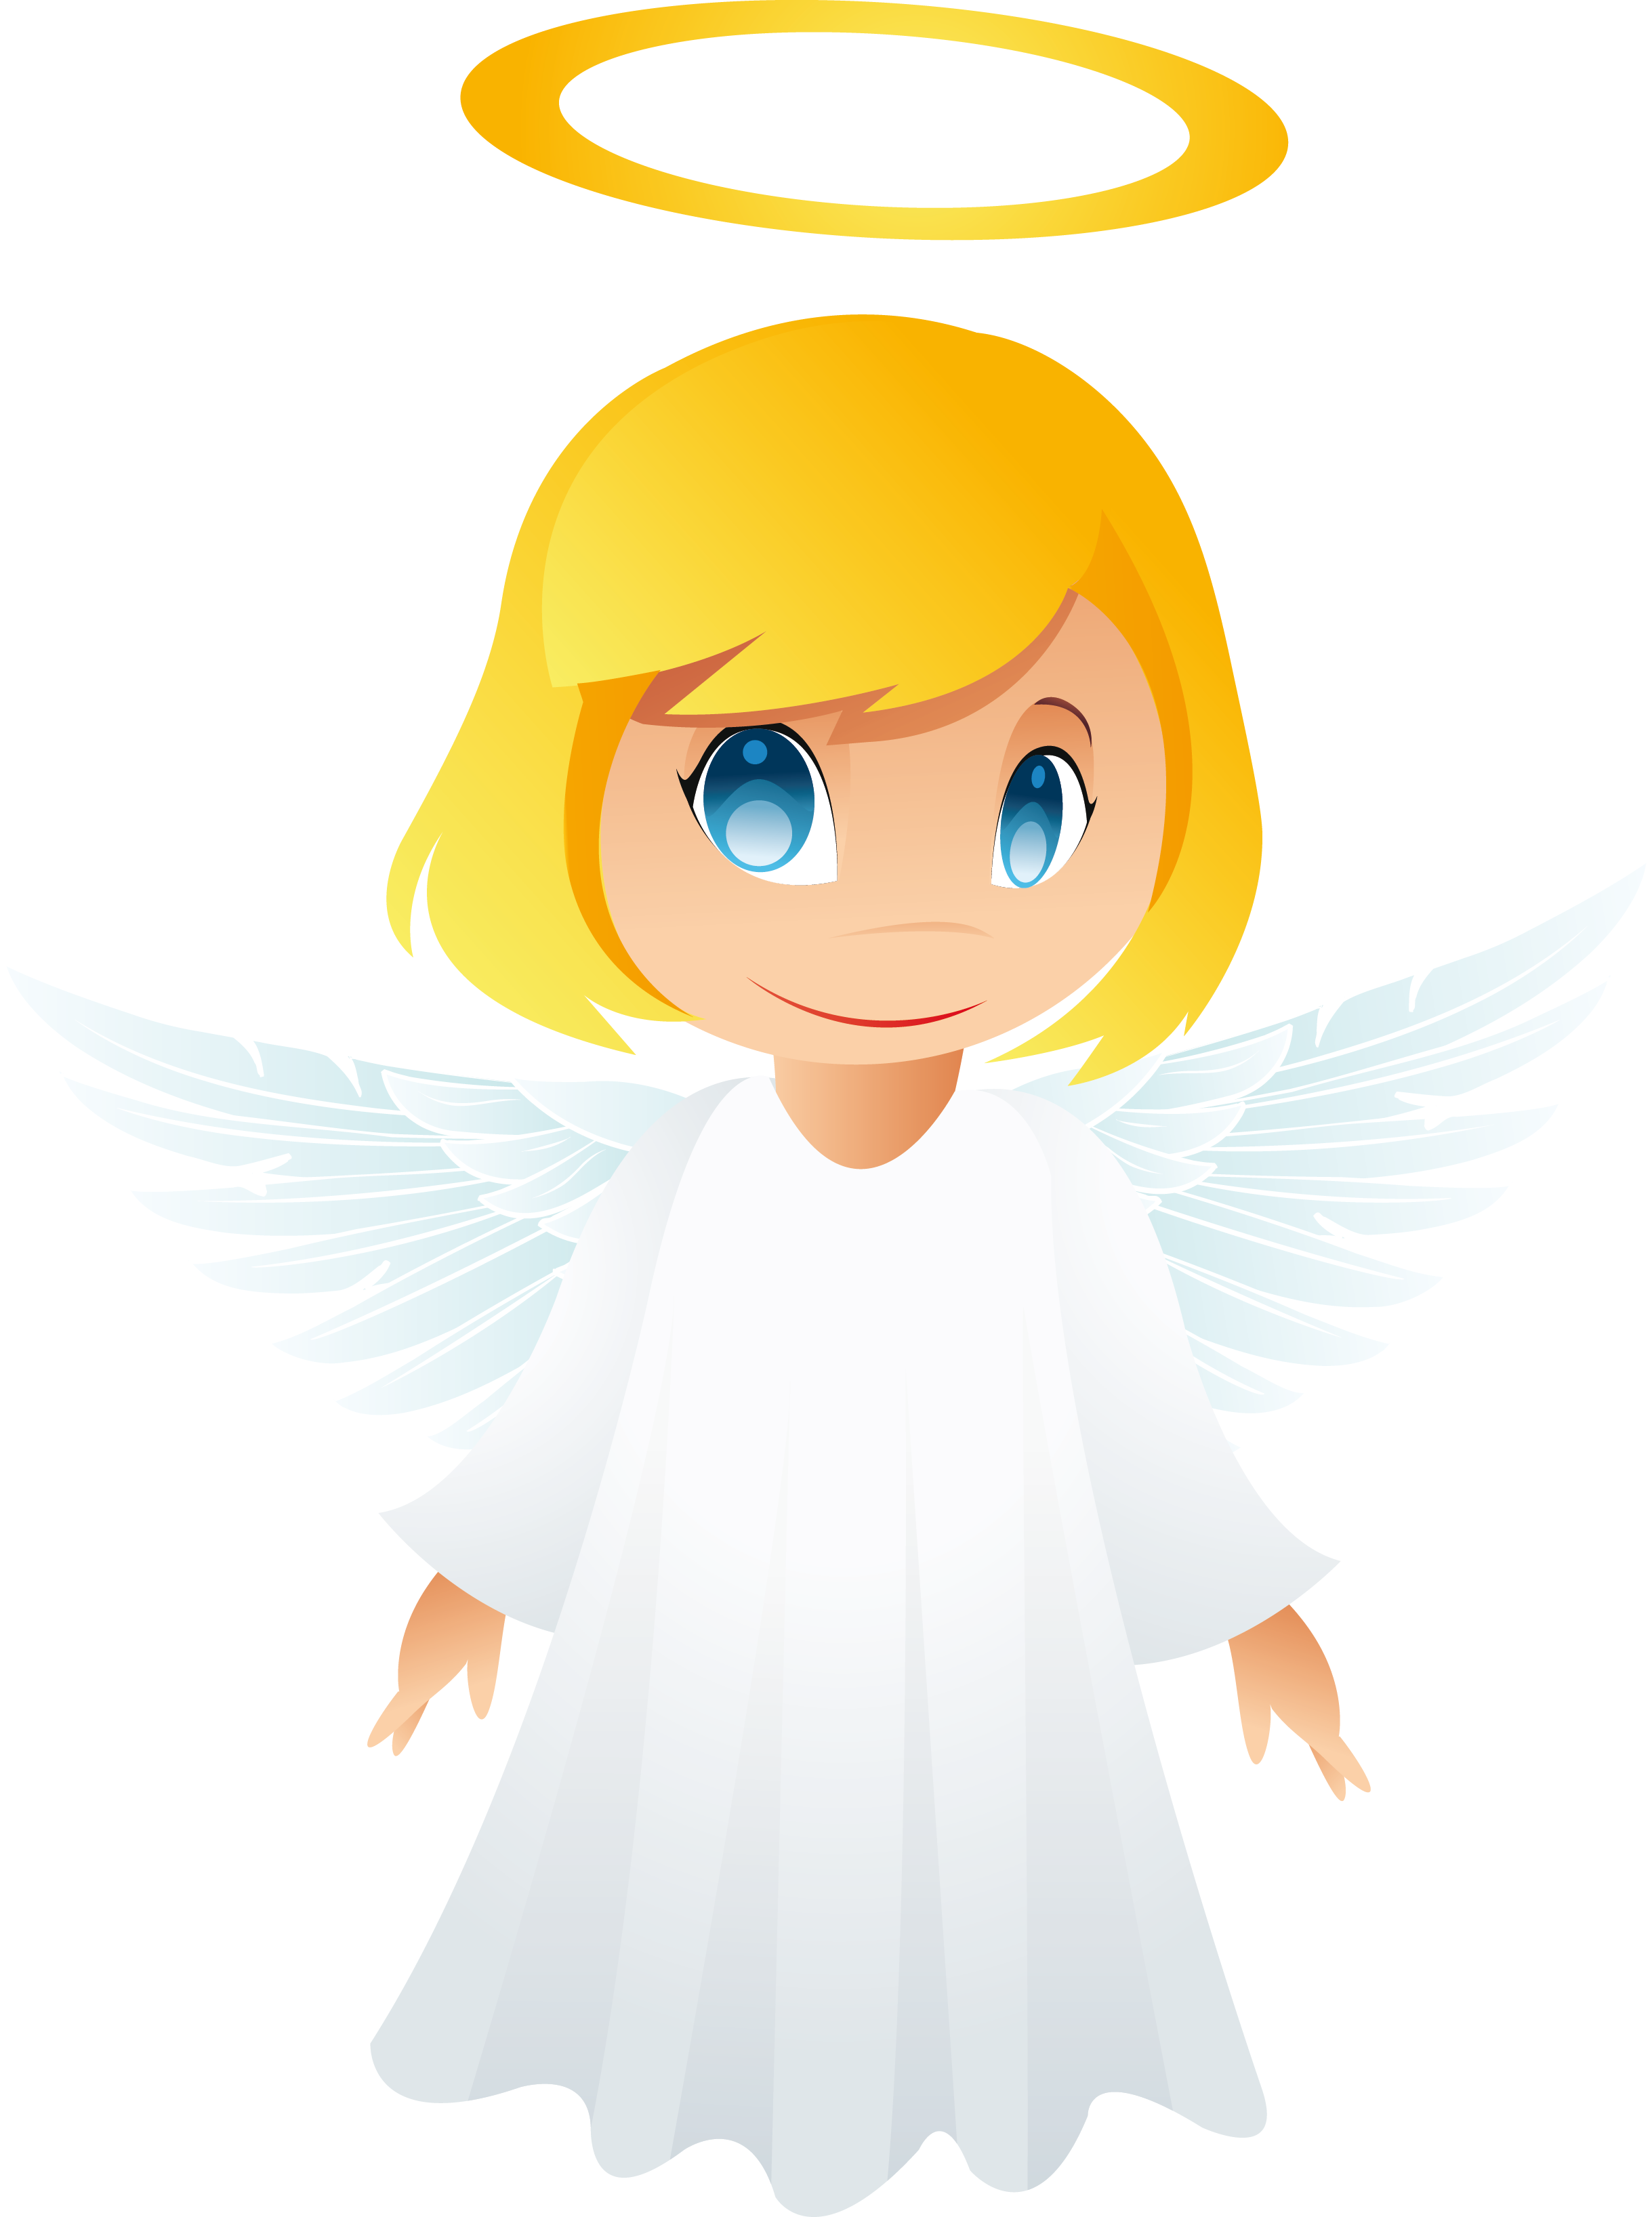 angel clipart free graphics of cherubs and angels the cliparts rh pinterest co uk clipart angel wings images clipart angel wings